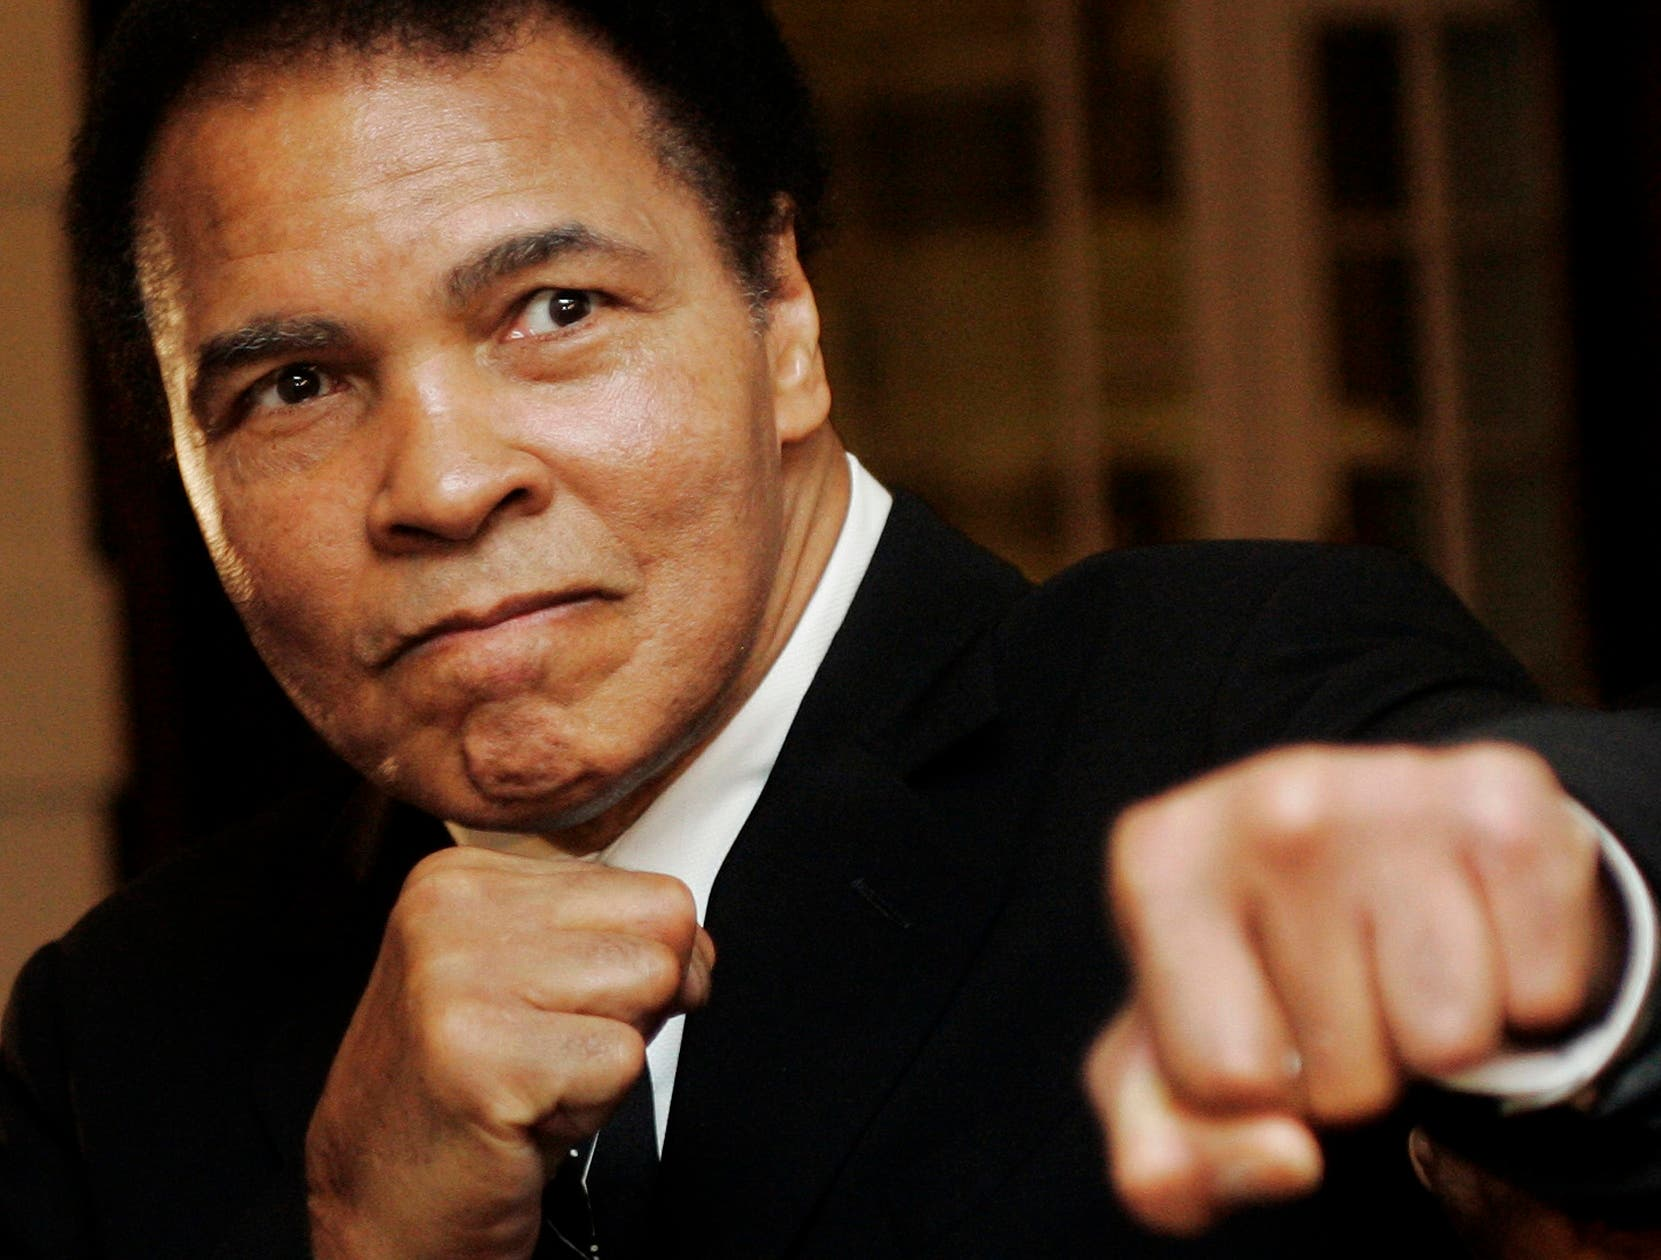 U.S. boxing great Muhammad Ali poses during the Crystal Award ceremony at the World Economic Forum (WEF) in Davos, Switzerland in this January 28, 2006 file photo.